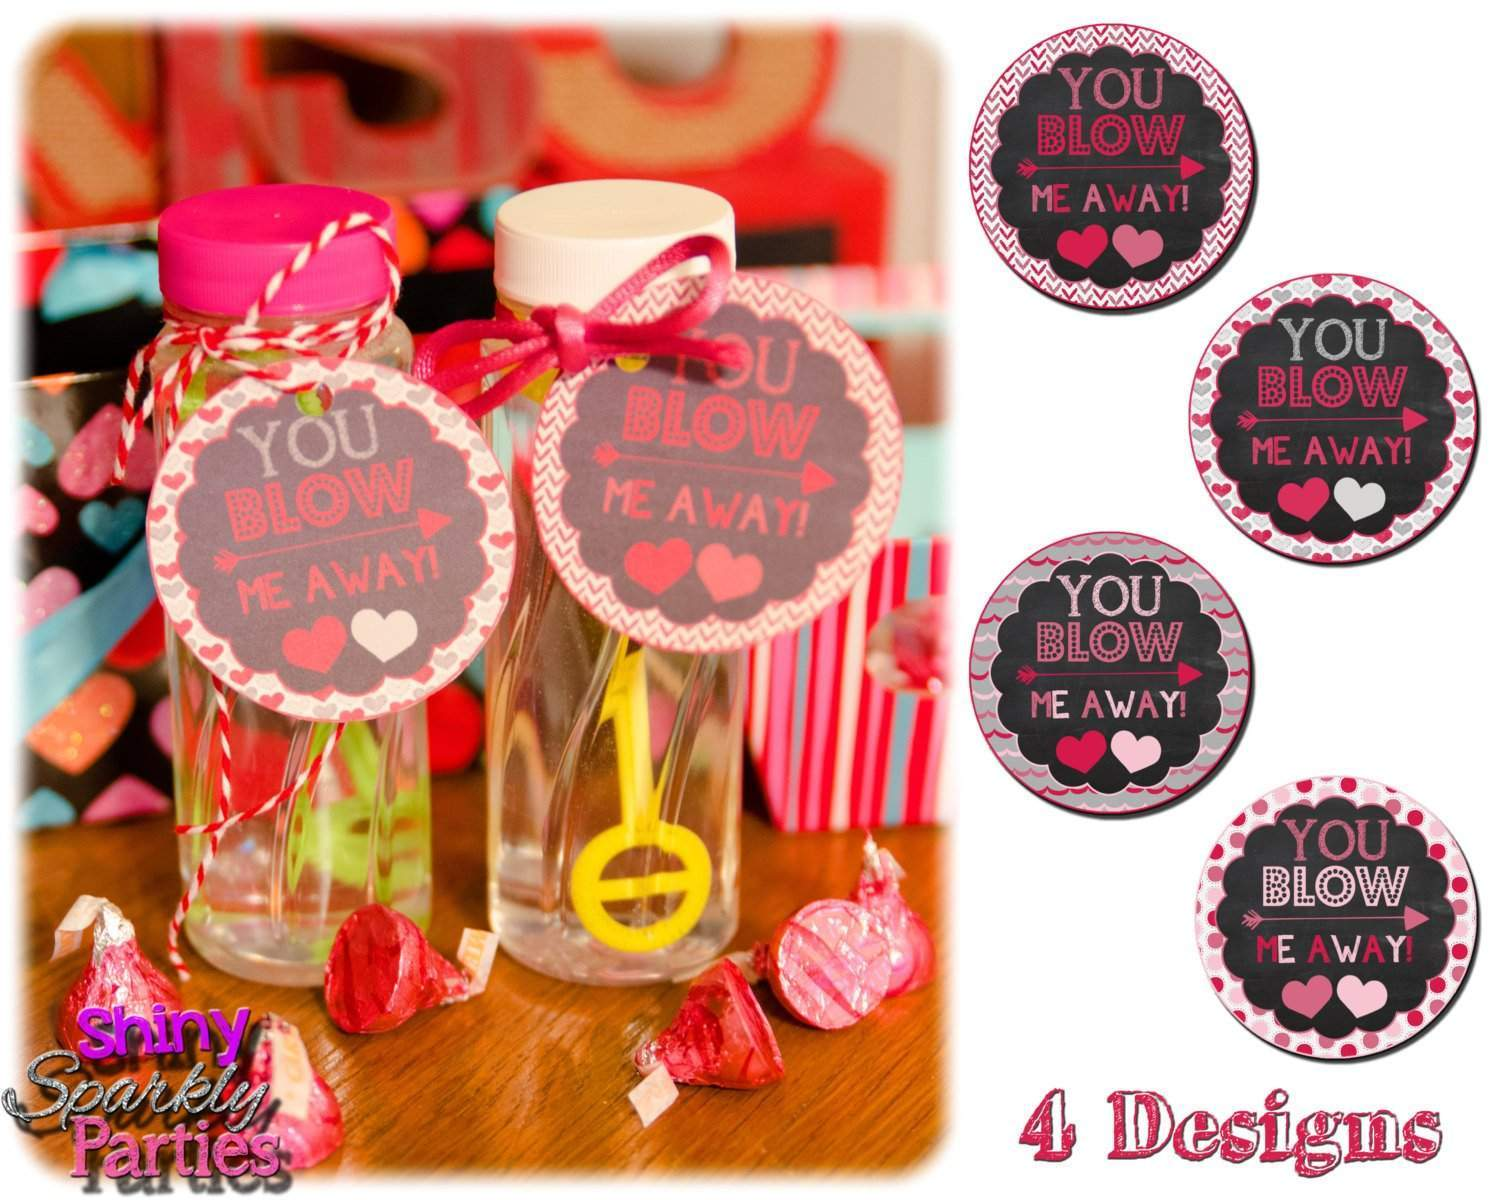 graphic regarding Bubble Valentine Printable called Bubble Valentine Tags